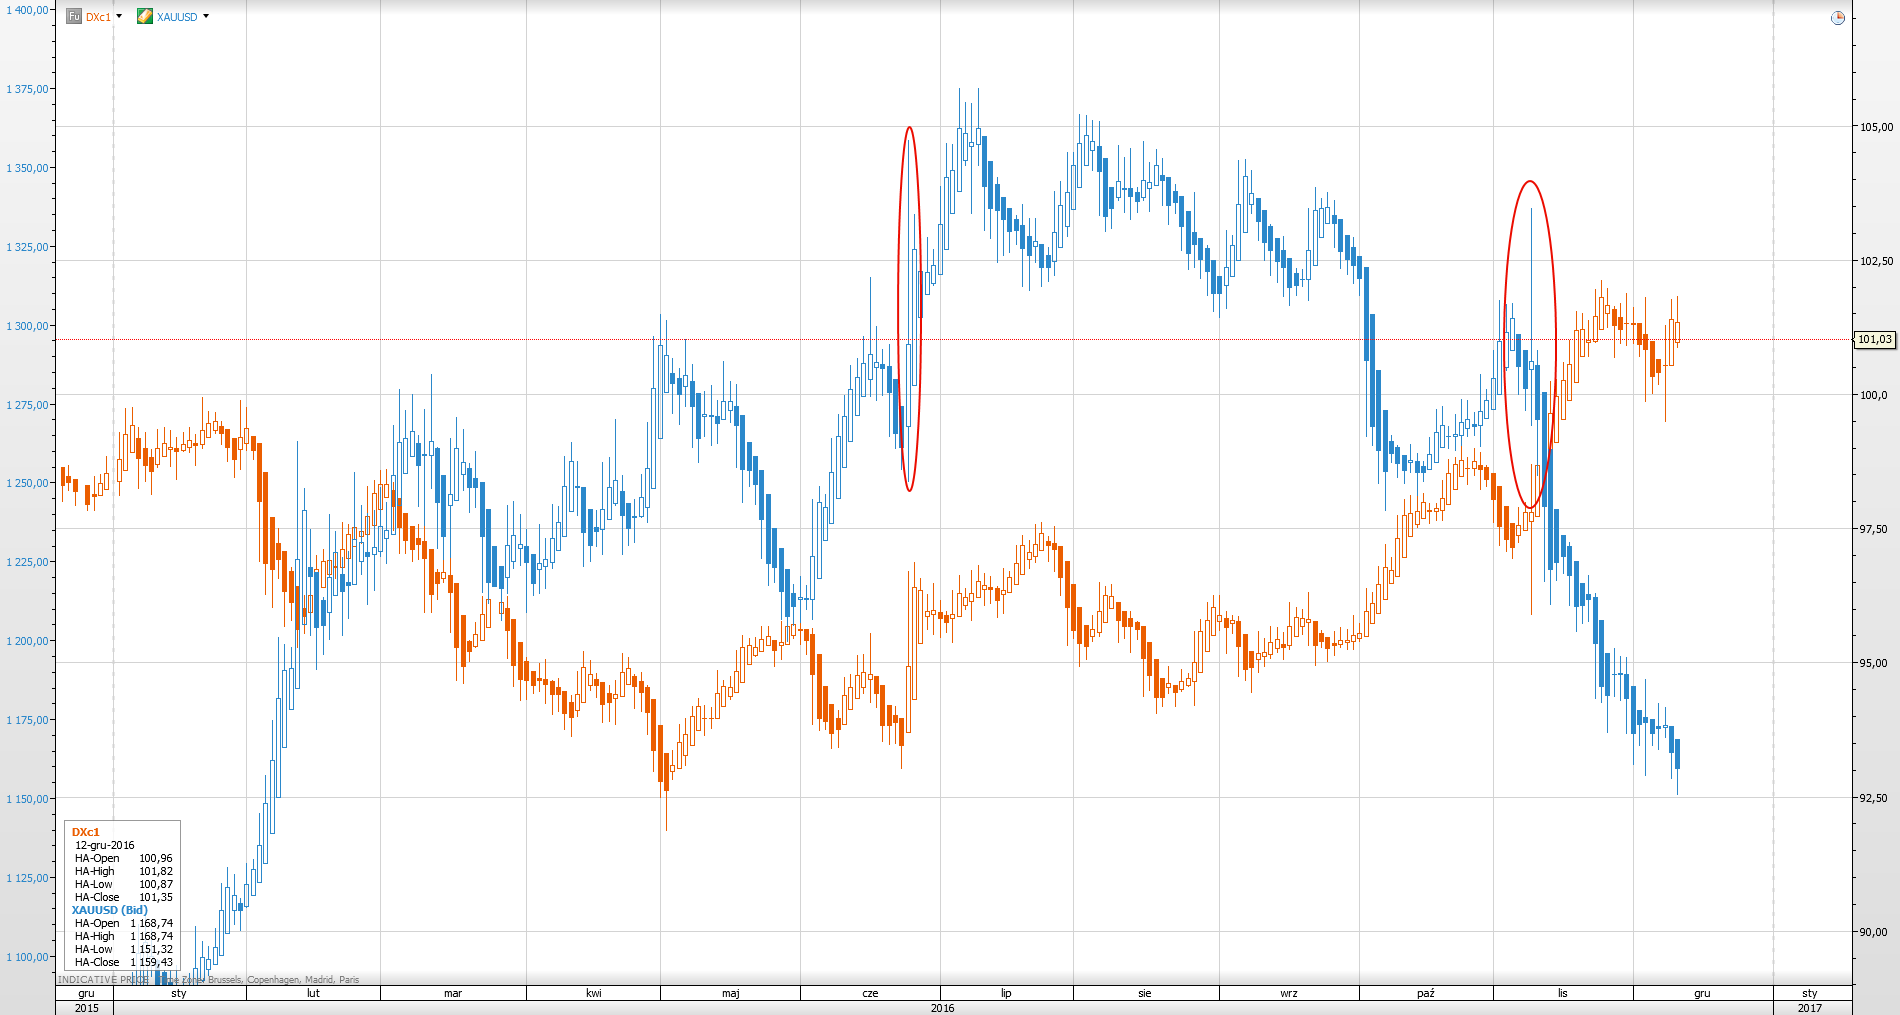 zloto-vs-dolar-index